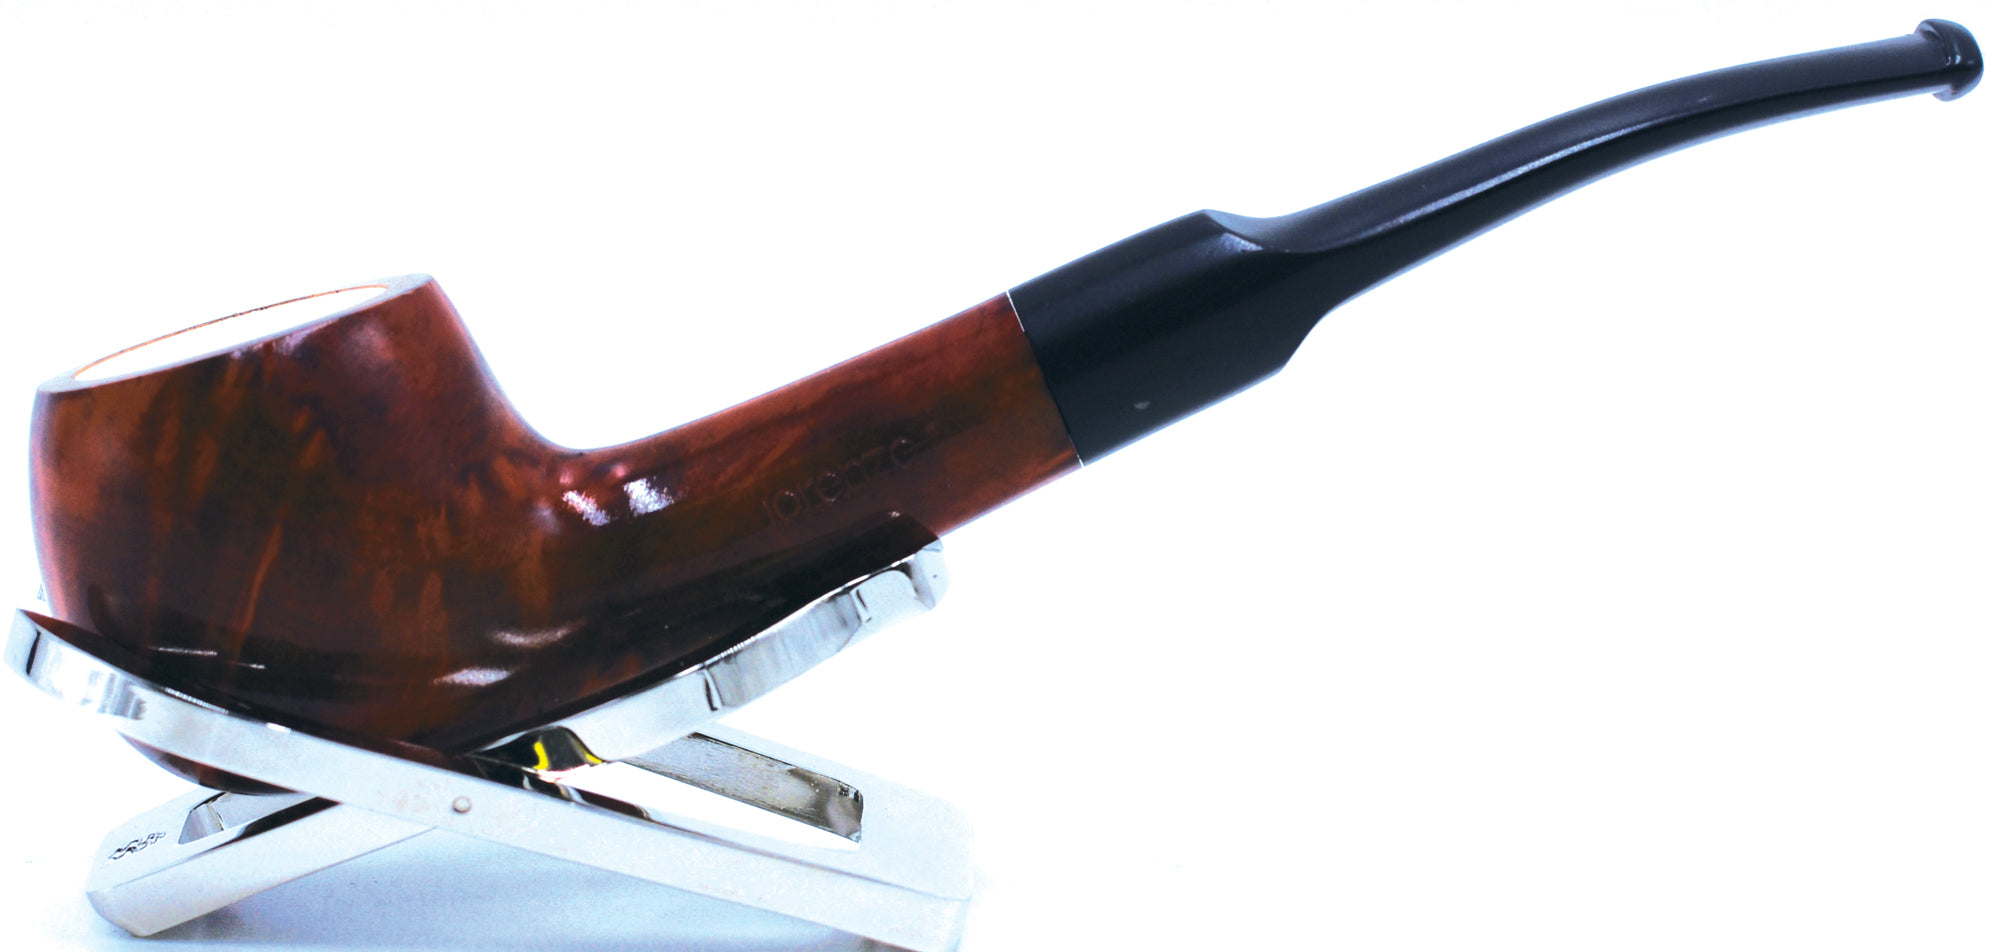 LORENZO® Meerschaum-lined Briar Smoking Pipe Made by Mediterranean Meerschaum and Briar In Italy 01-03-600